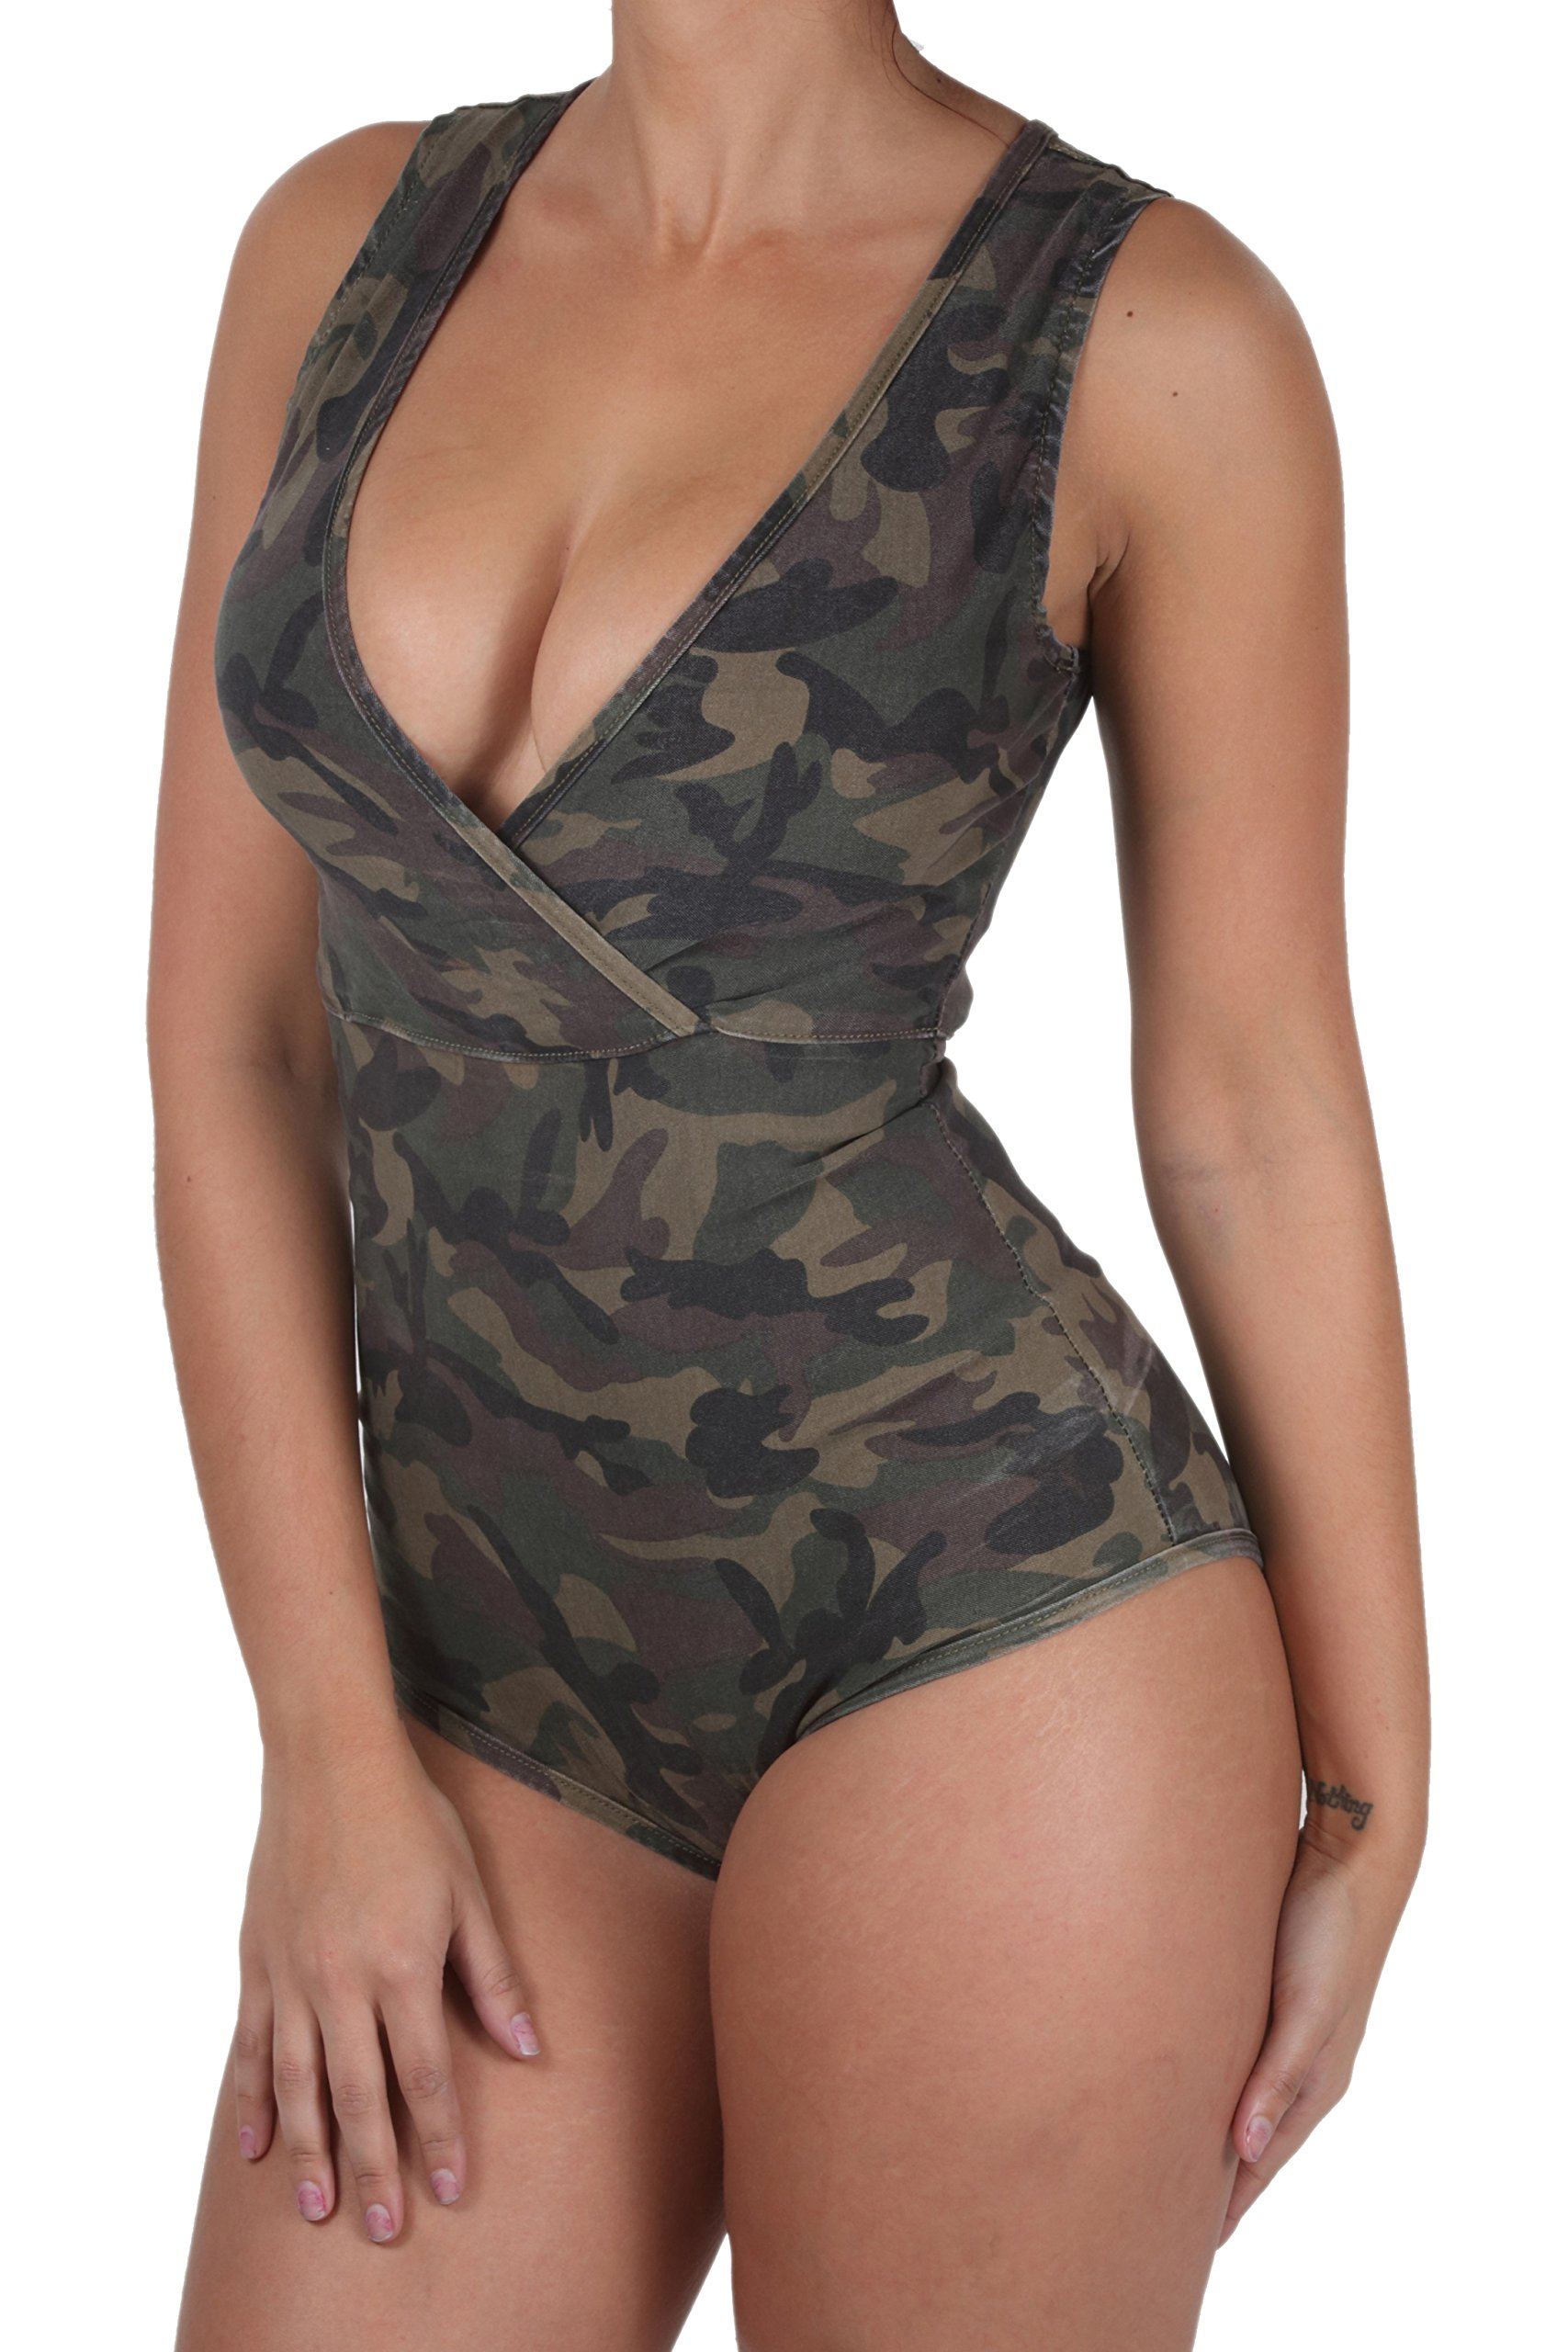 BD-8514-AM - Women's Sexy V-Neck, Sleeveless, Camouflage, Jumpsuits Bodysuit Size M